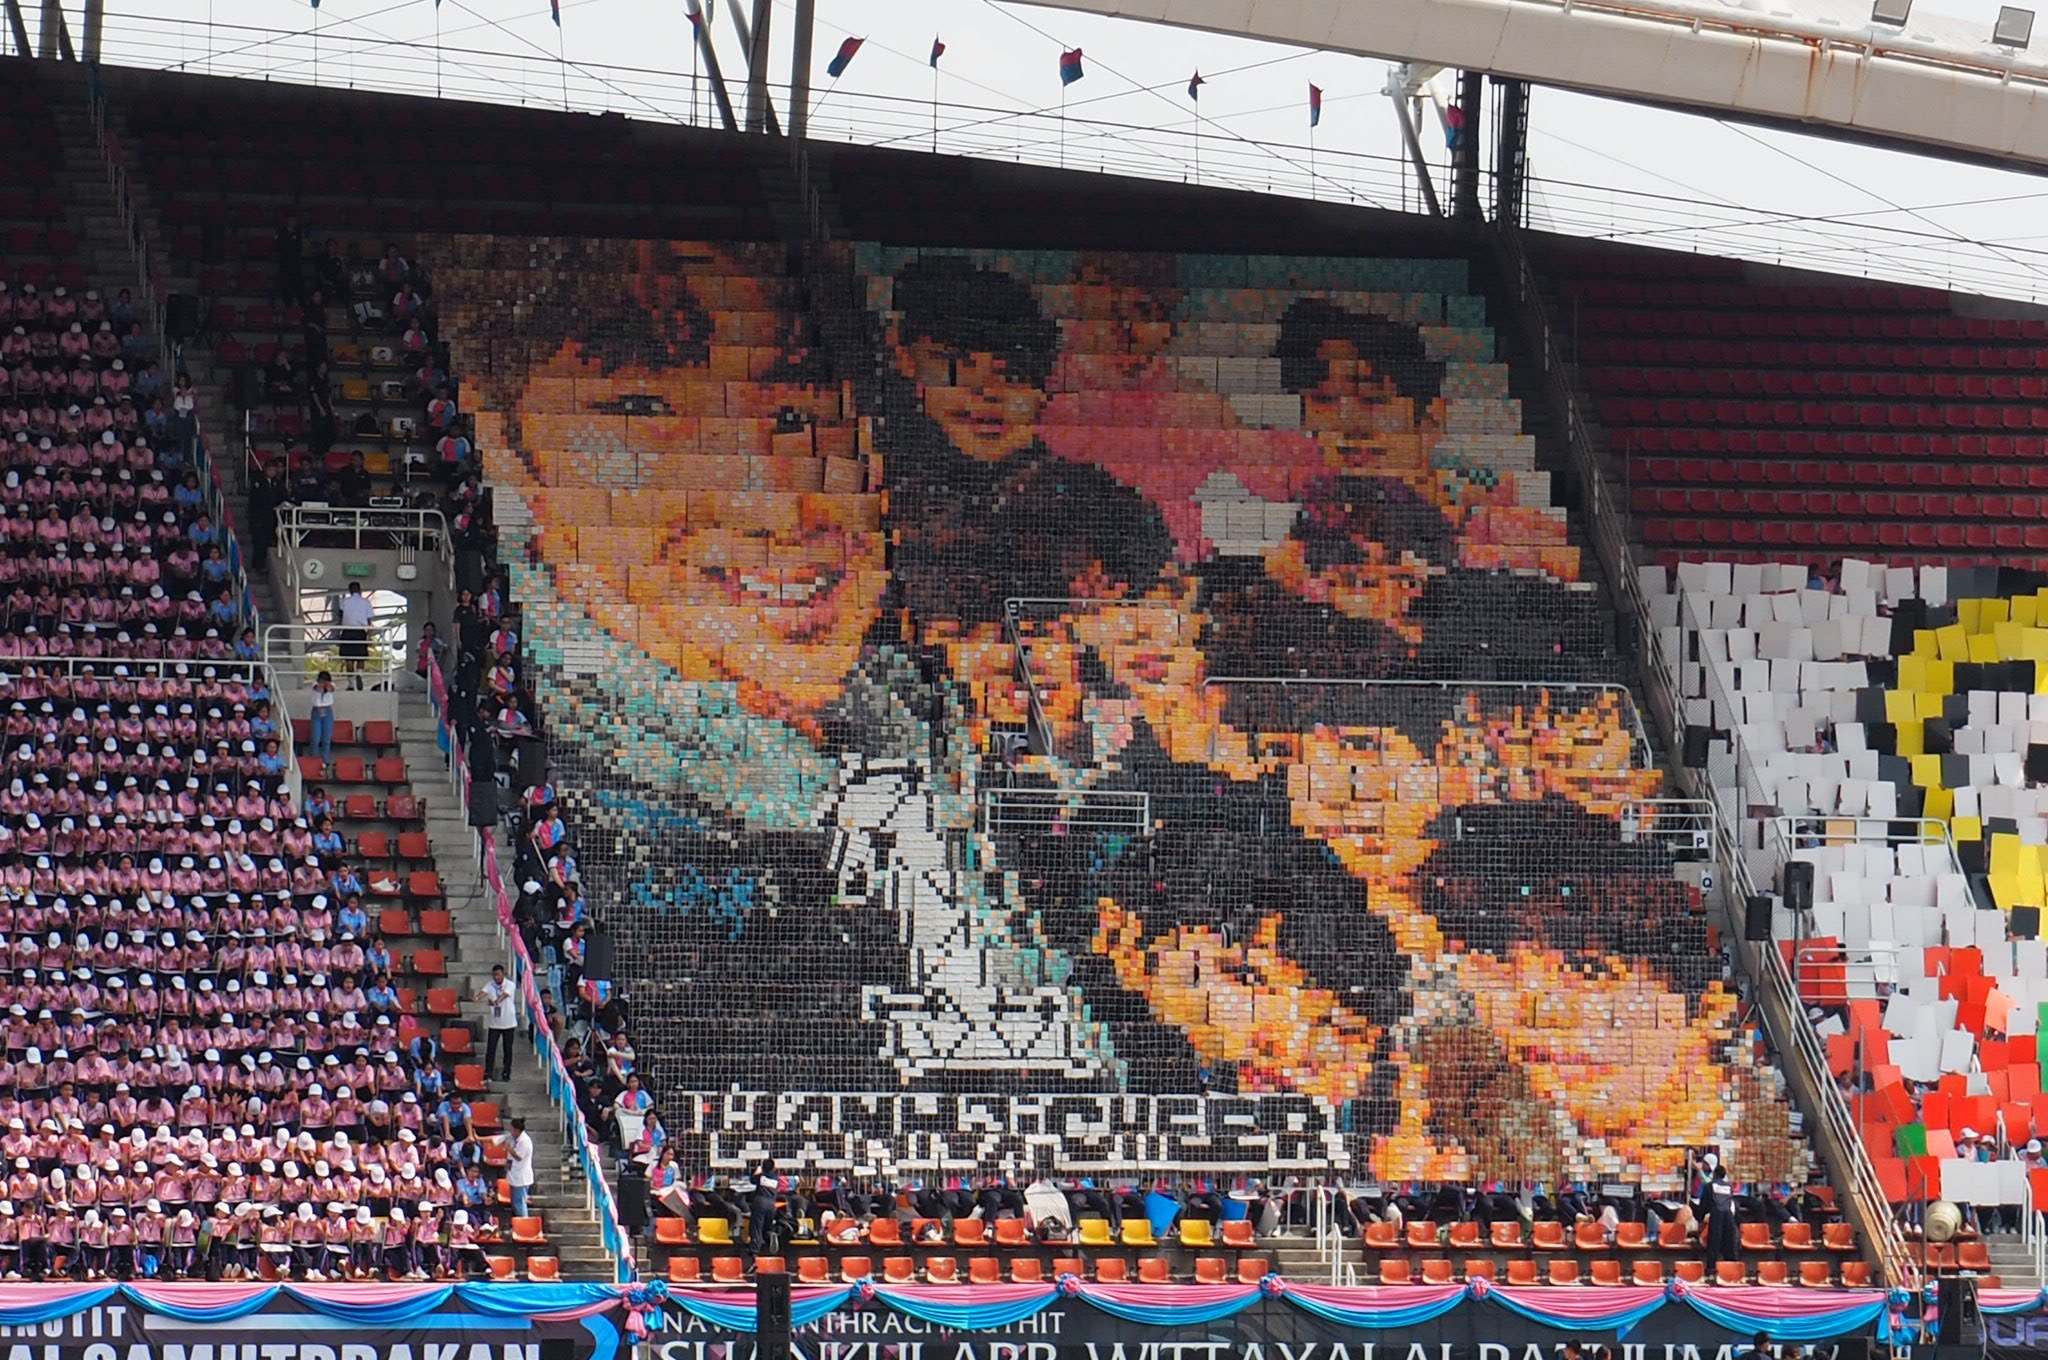 Thai students did card stunts with #WannaOne picture at their school's Sports Day ���� cr. @.danieljrvodkax https://t.co/G5sHrAxCeo